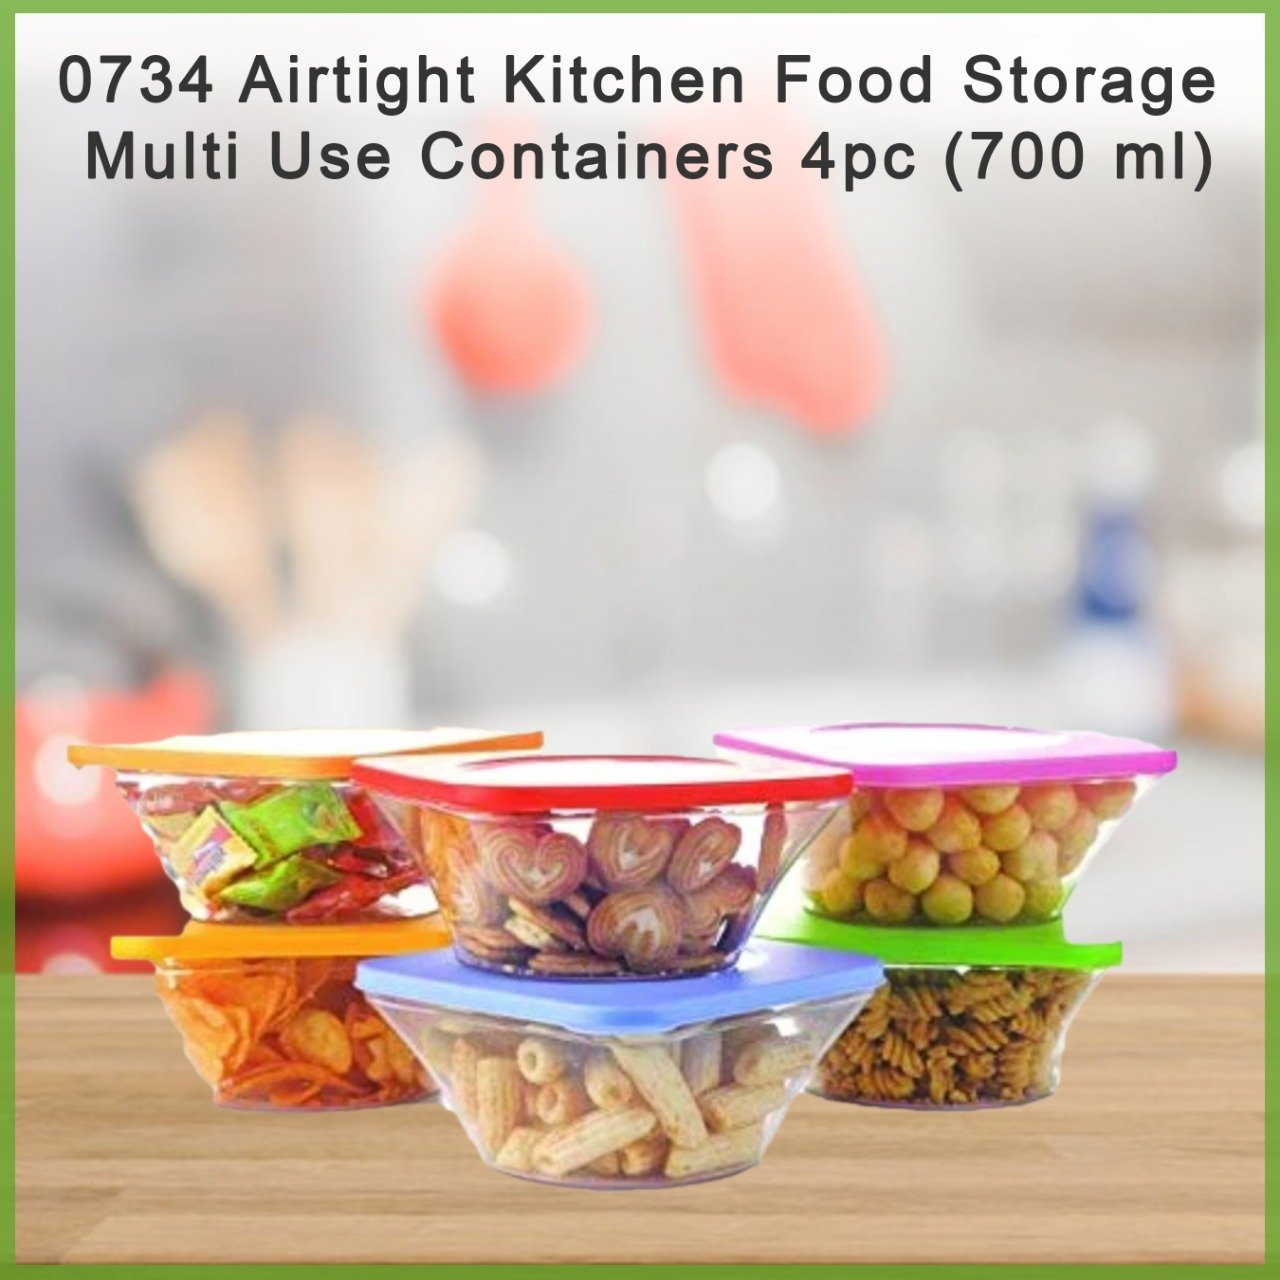 Airtight Kitchen Food Storage Multi Use Containers 4pc (700 ml)